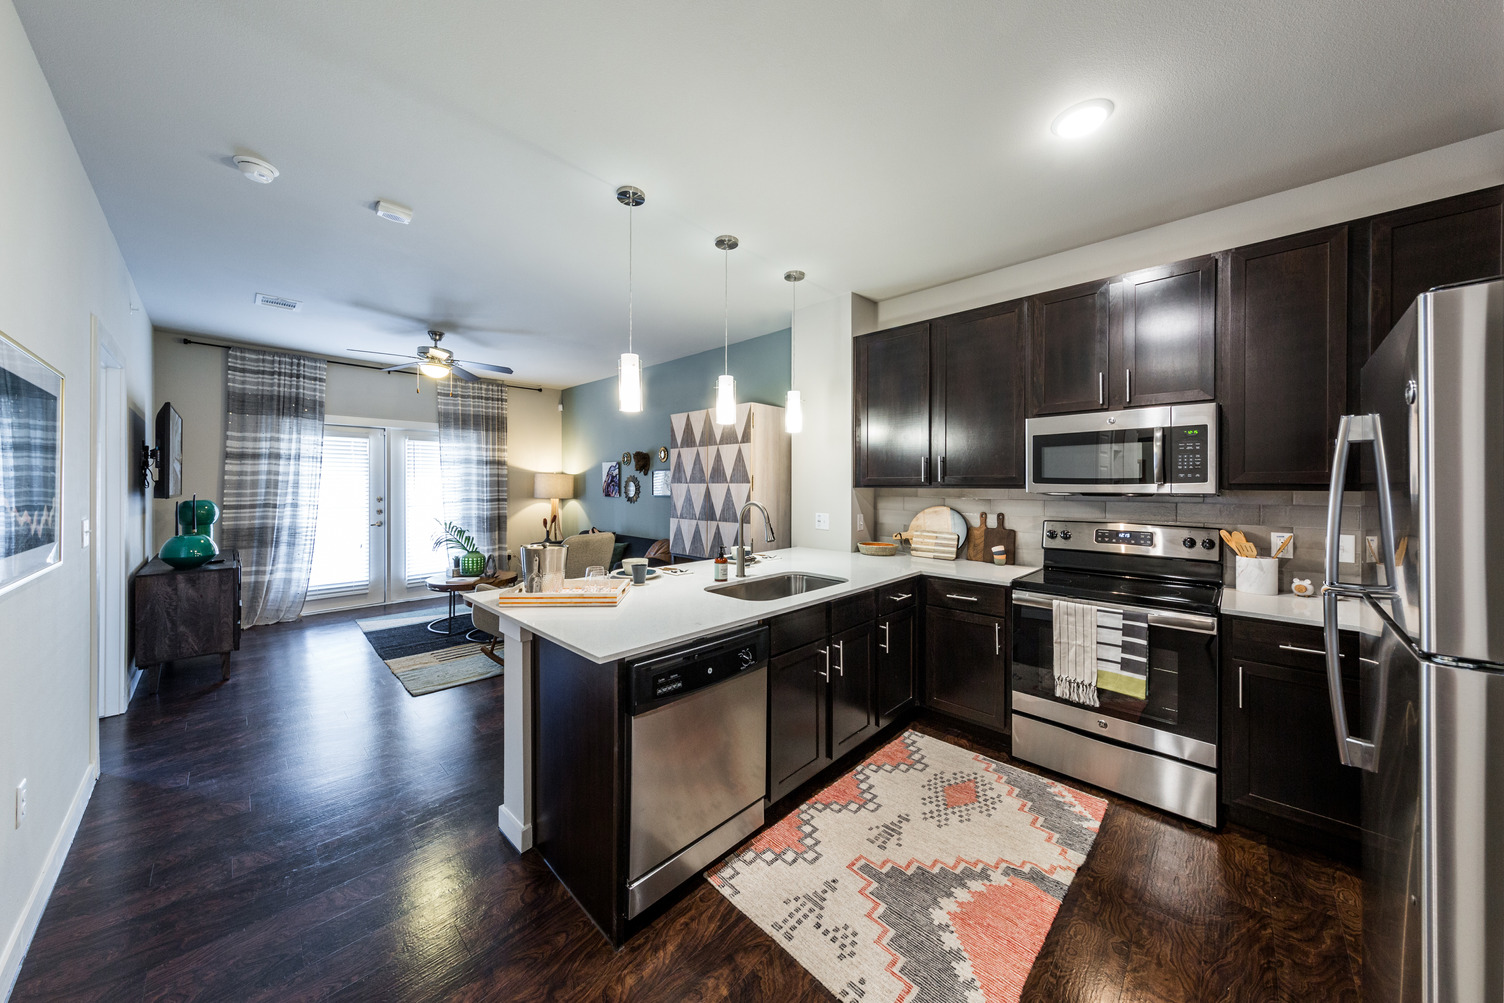 Model apartment with dark wood flooring, dark cabinets, and stainless steel appliances with pendant lighting over quartz counters